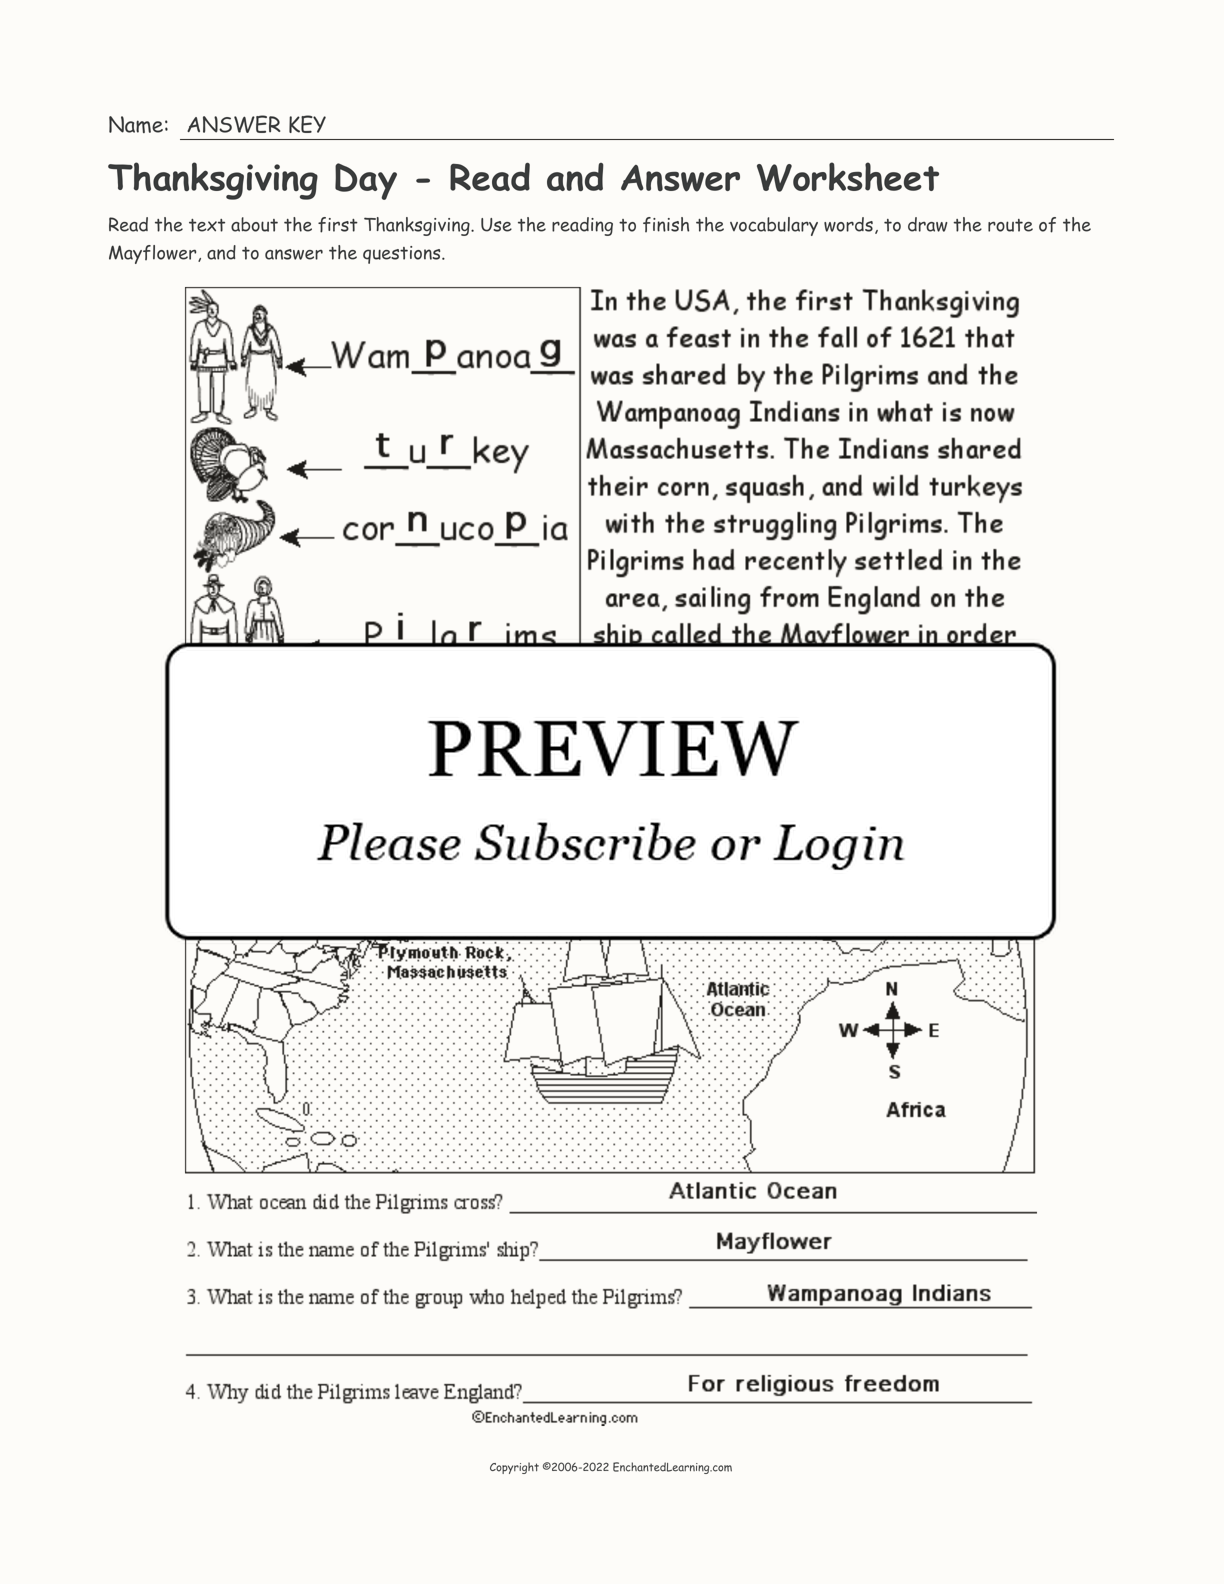 Thanksgiving Day - Read and Answer Worksheet interactive worksheet page 2